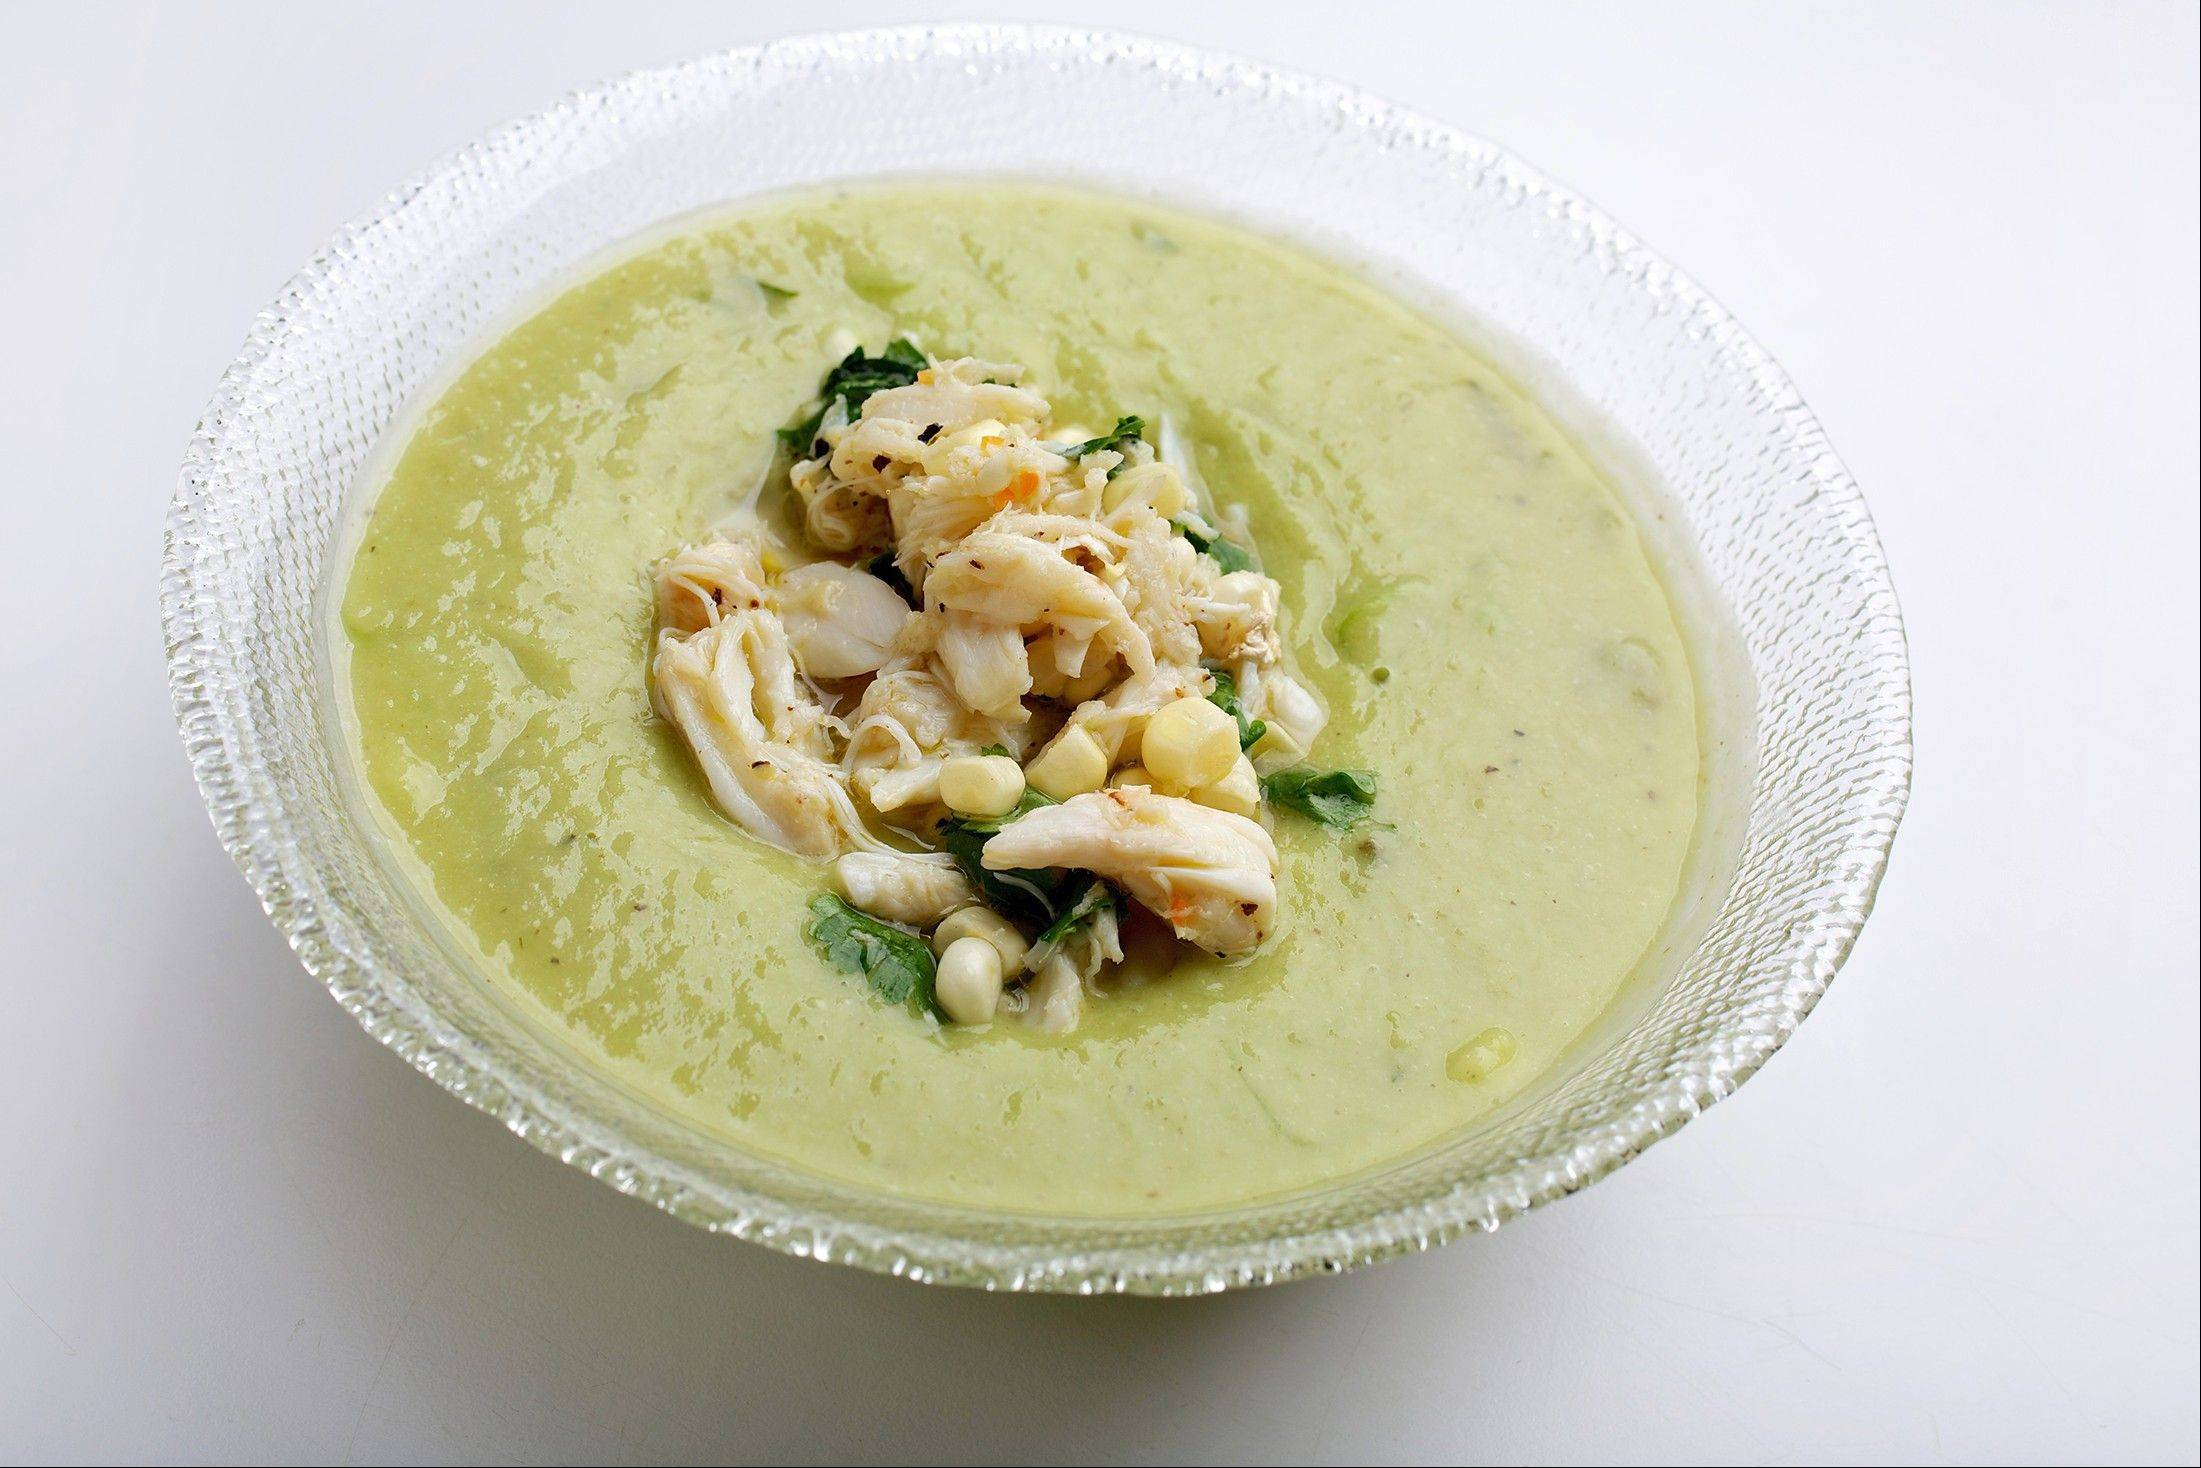 Chilled Avocado and Melon Soup With Spicy Crab-Corn Salad